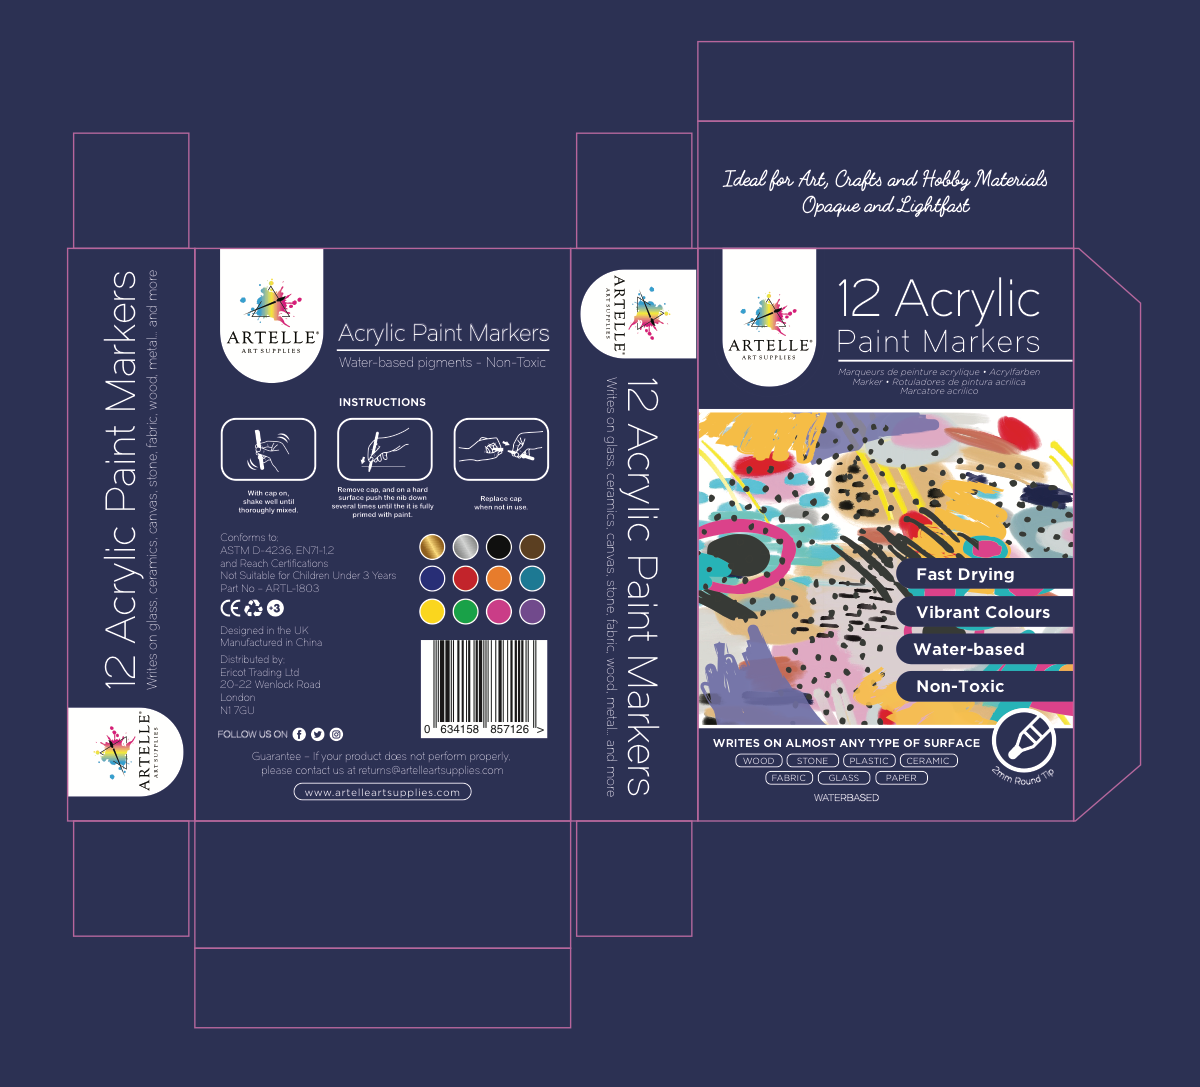 Packaging for Acrylic Paint Markers